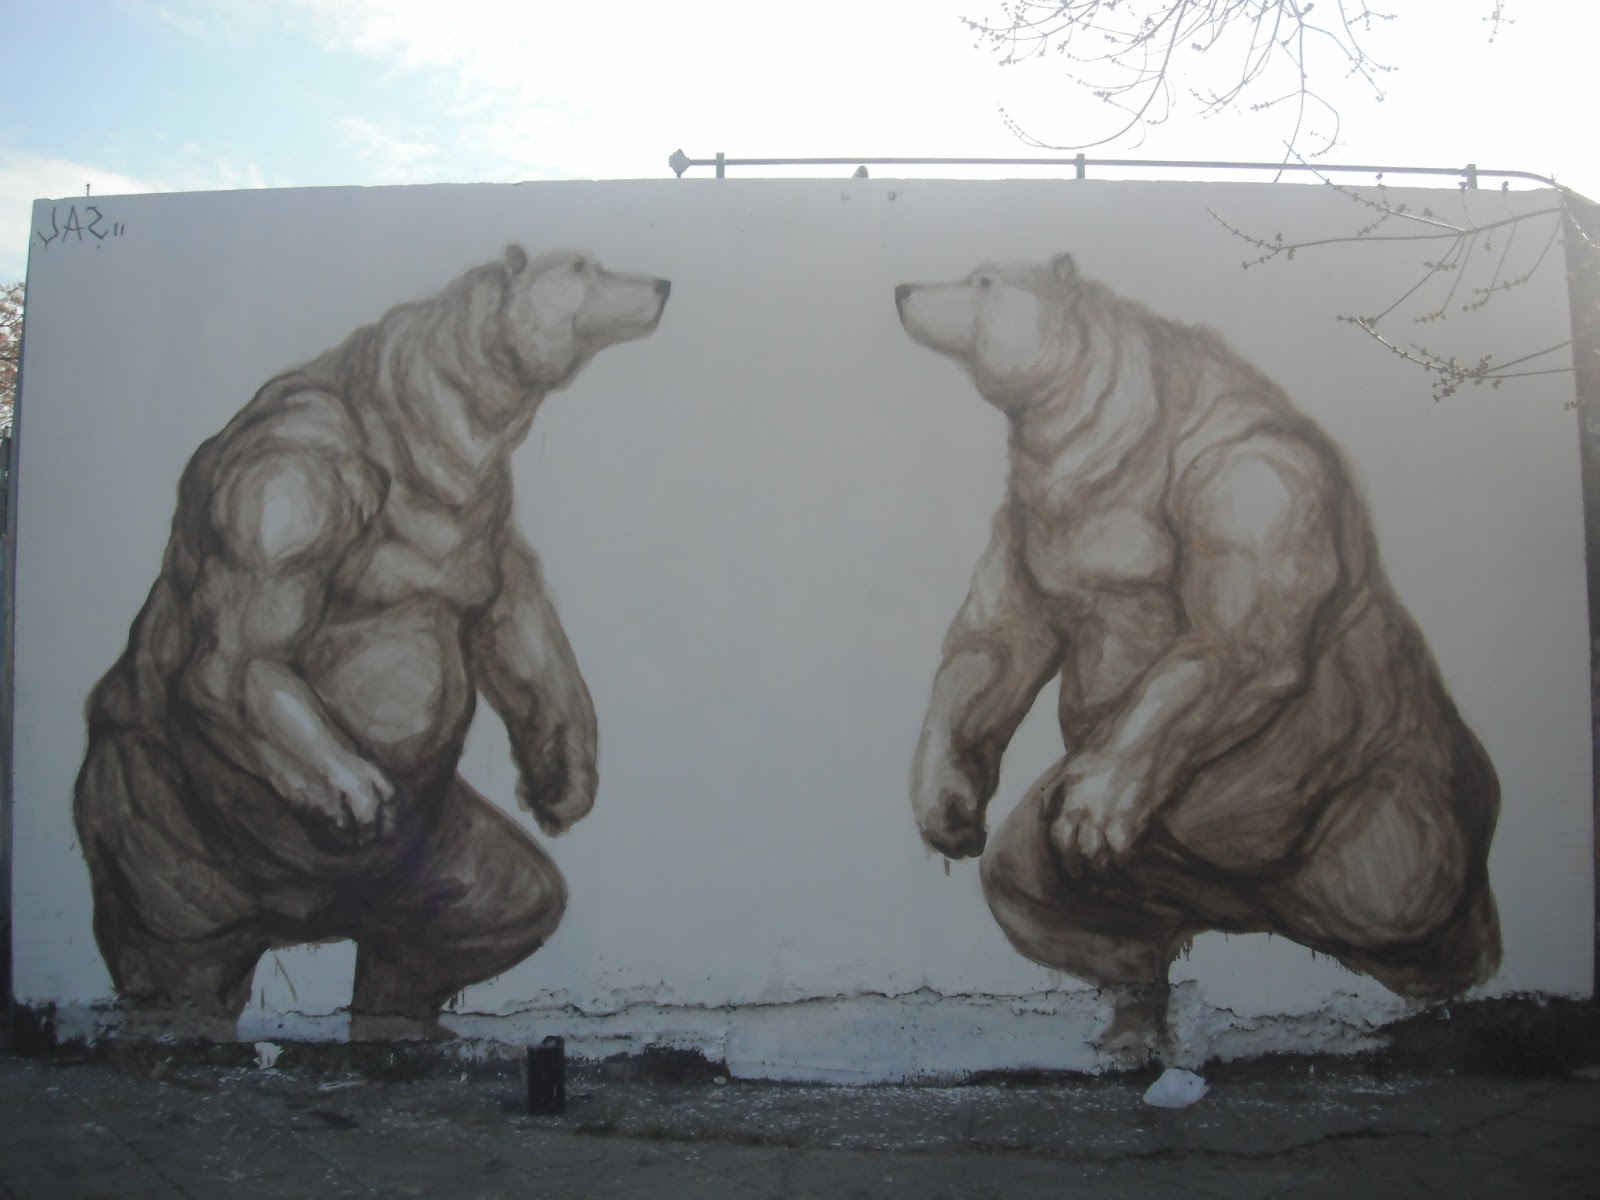 Street art in Buenos Aires, Argentina